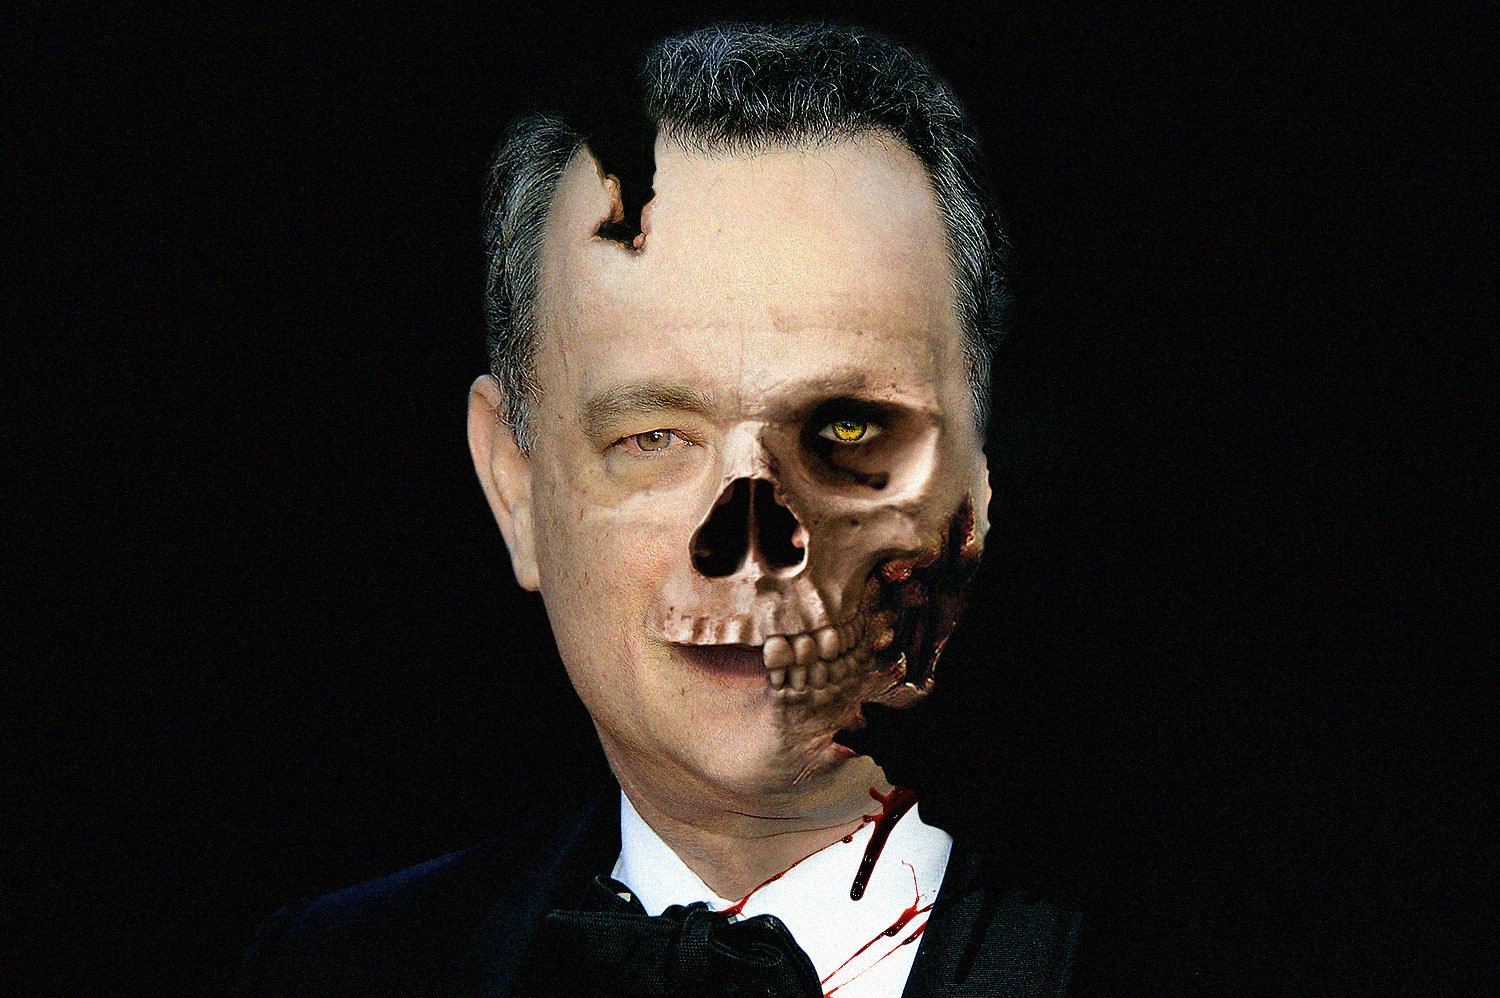 Tom Hanks as a zombie | Source: Getty Images